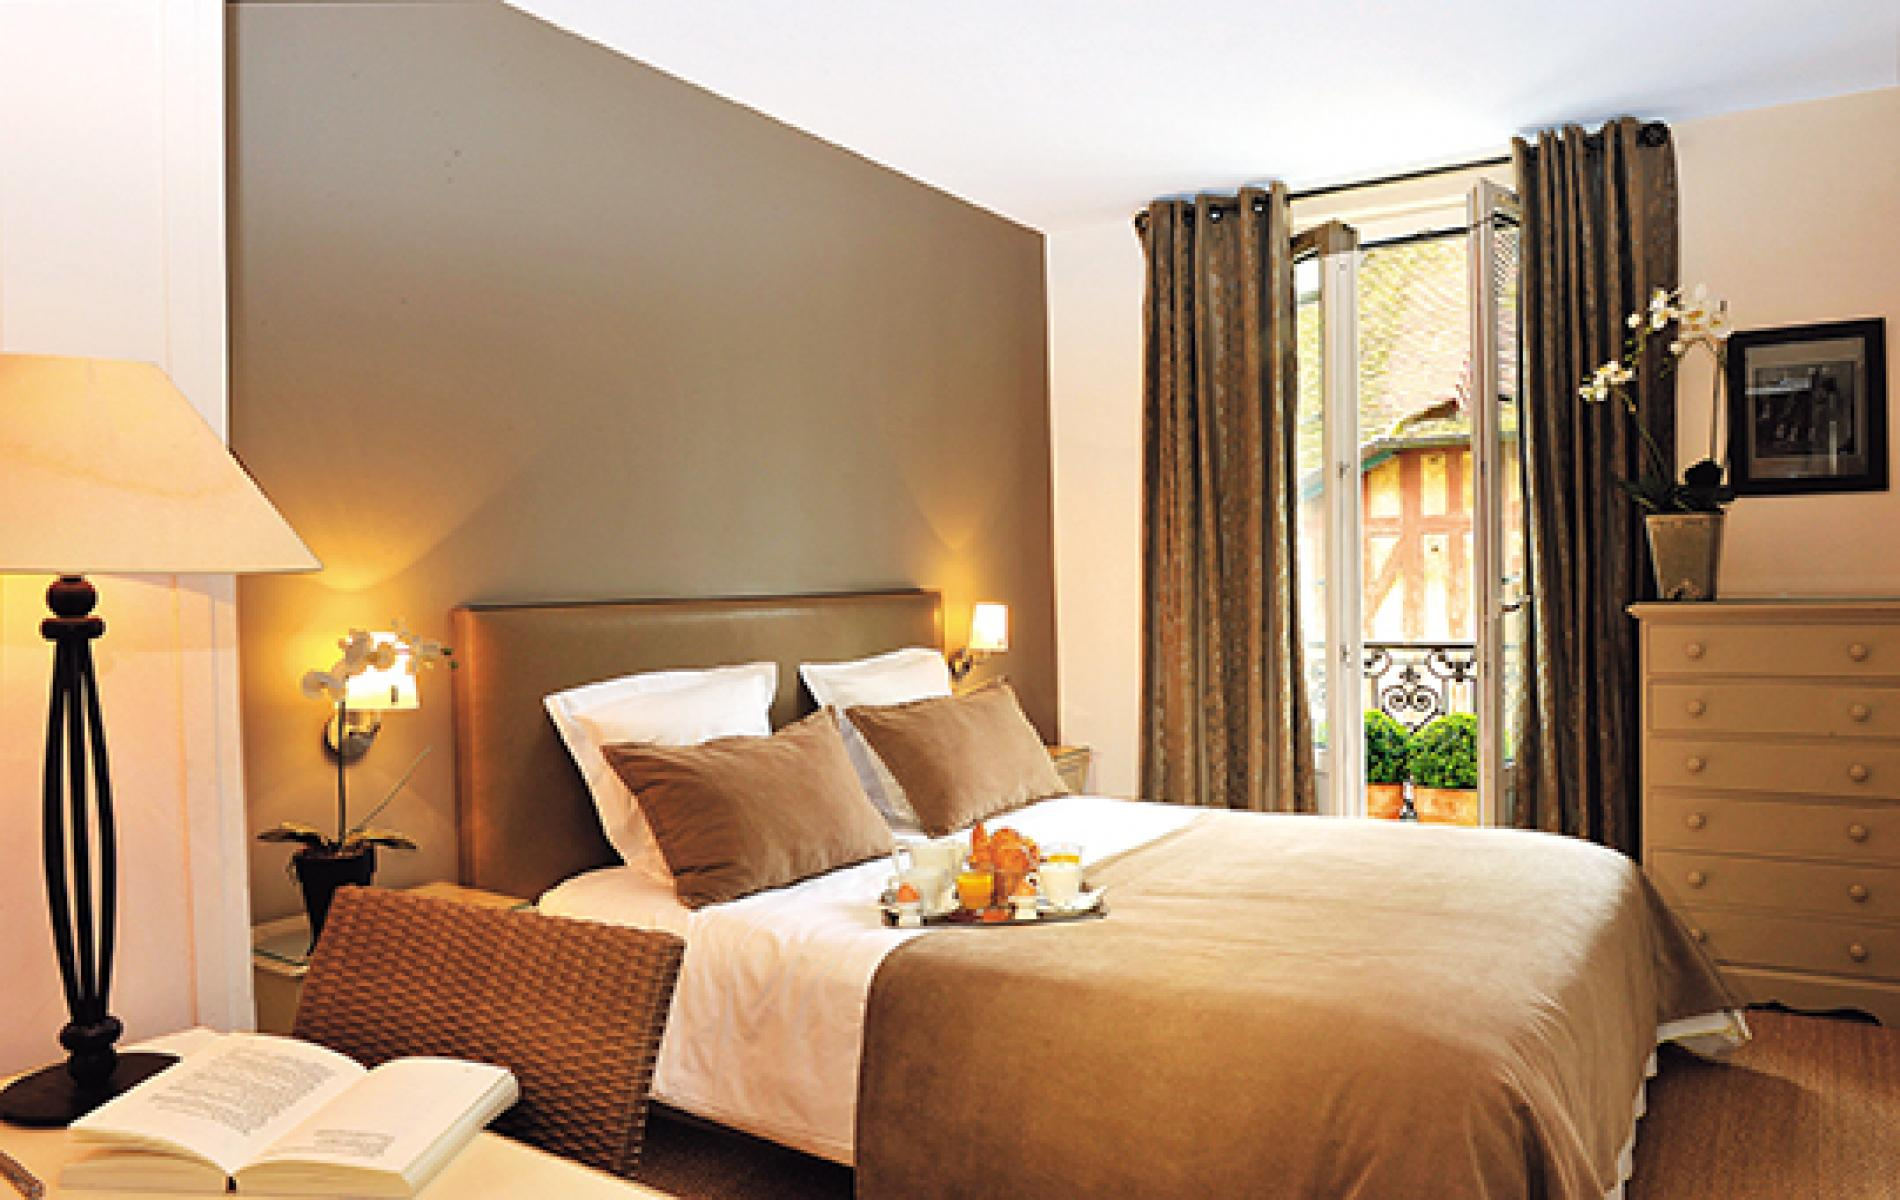 Le fer cheval hotel trouville h tel 3 toiles for Chambre d hotel normandie